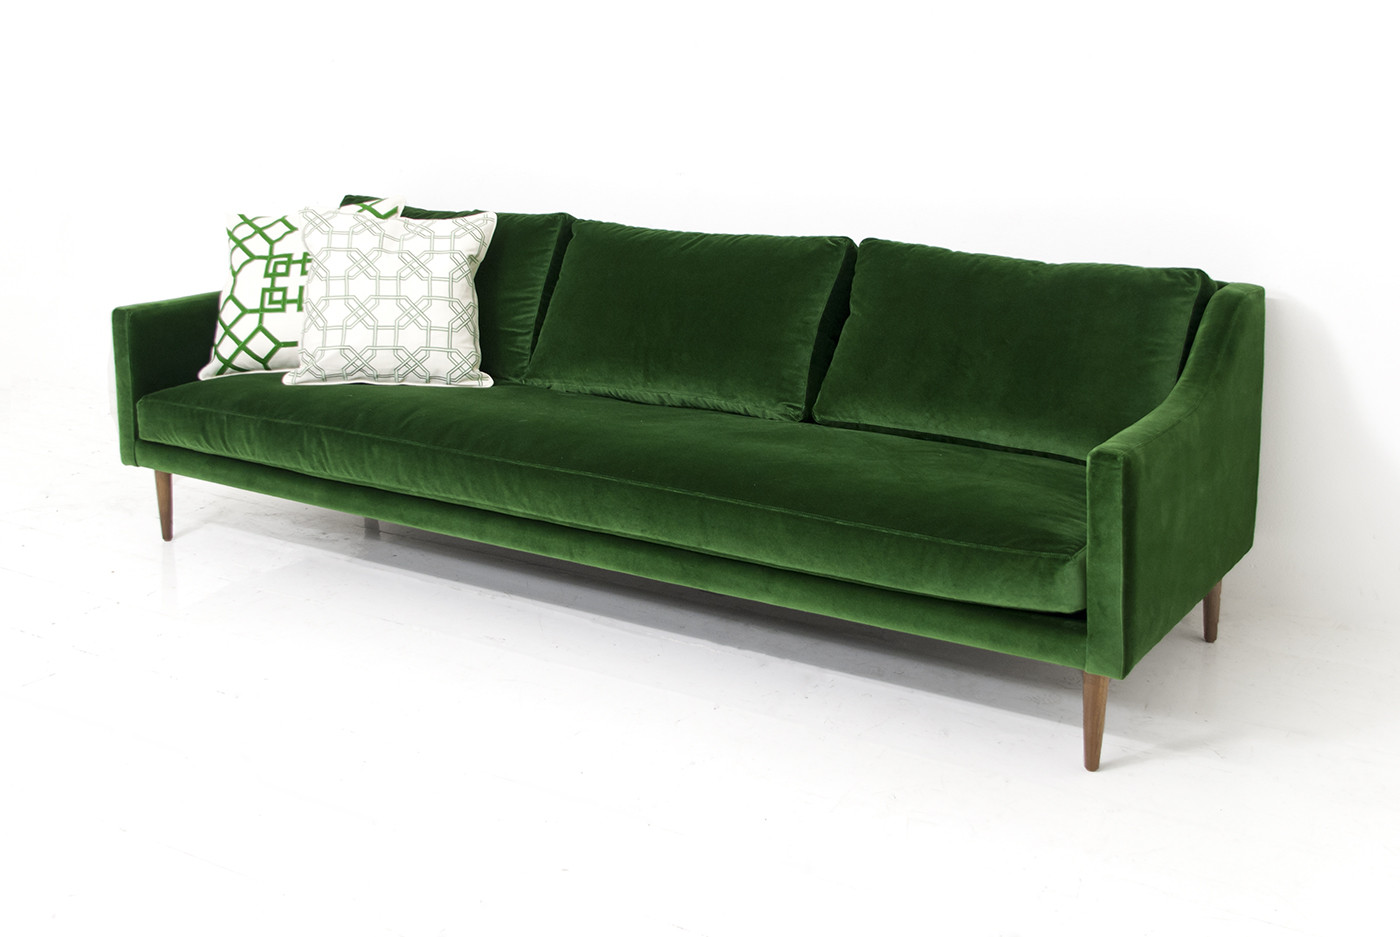 Lovely Velvet Green Sofa 97 With Additional Living Room Sofa Ideas with Velvet Green Sofa